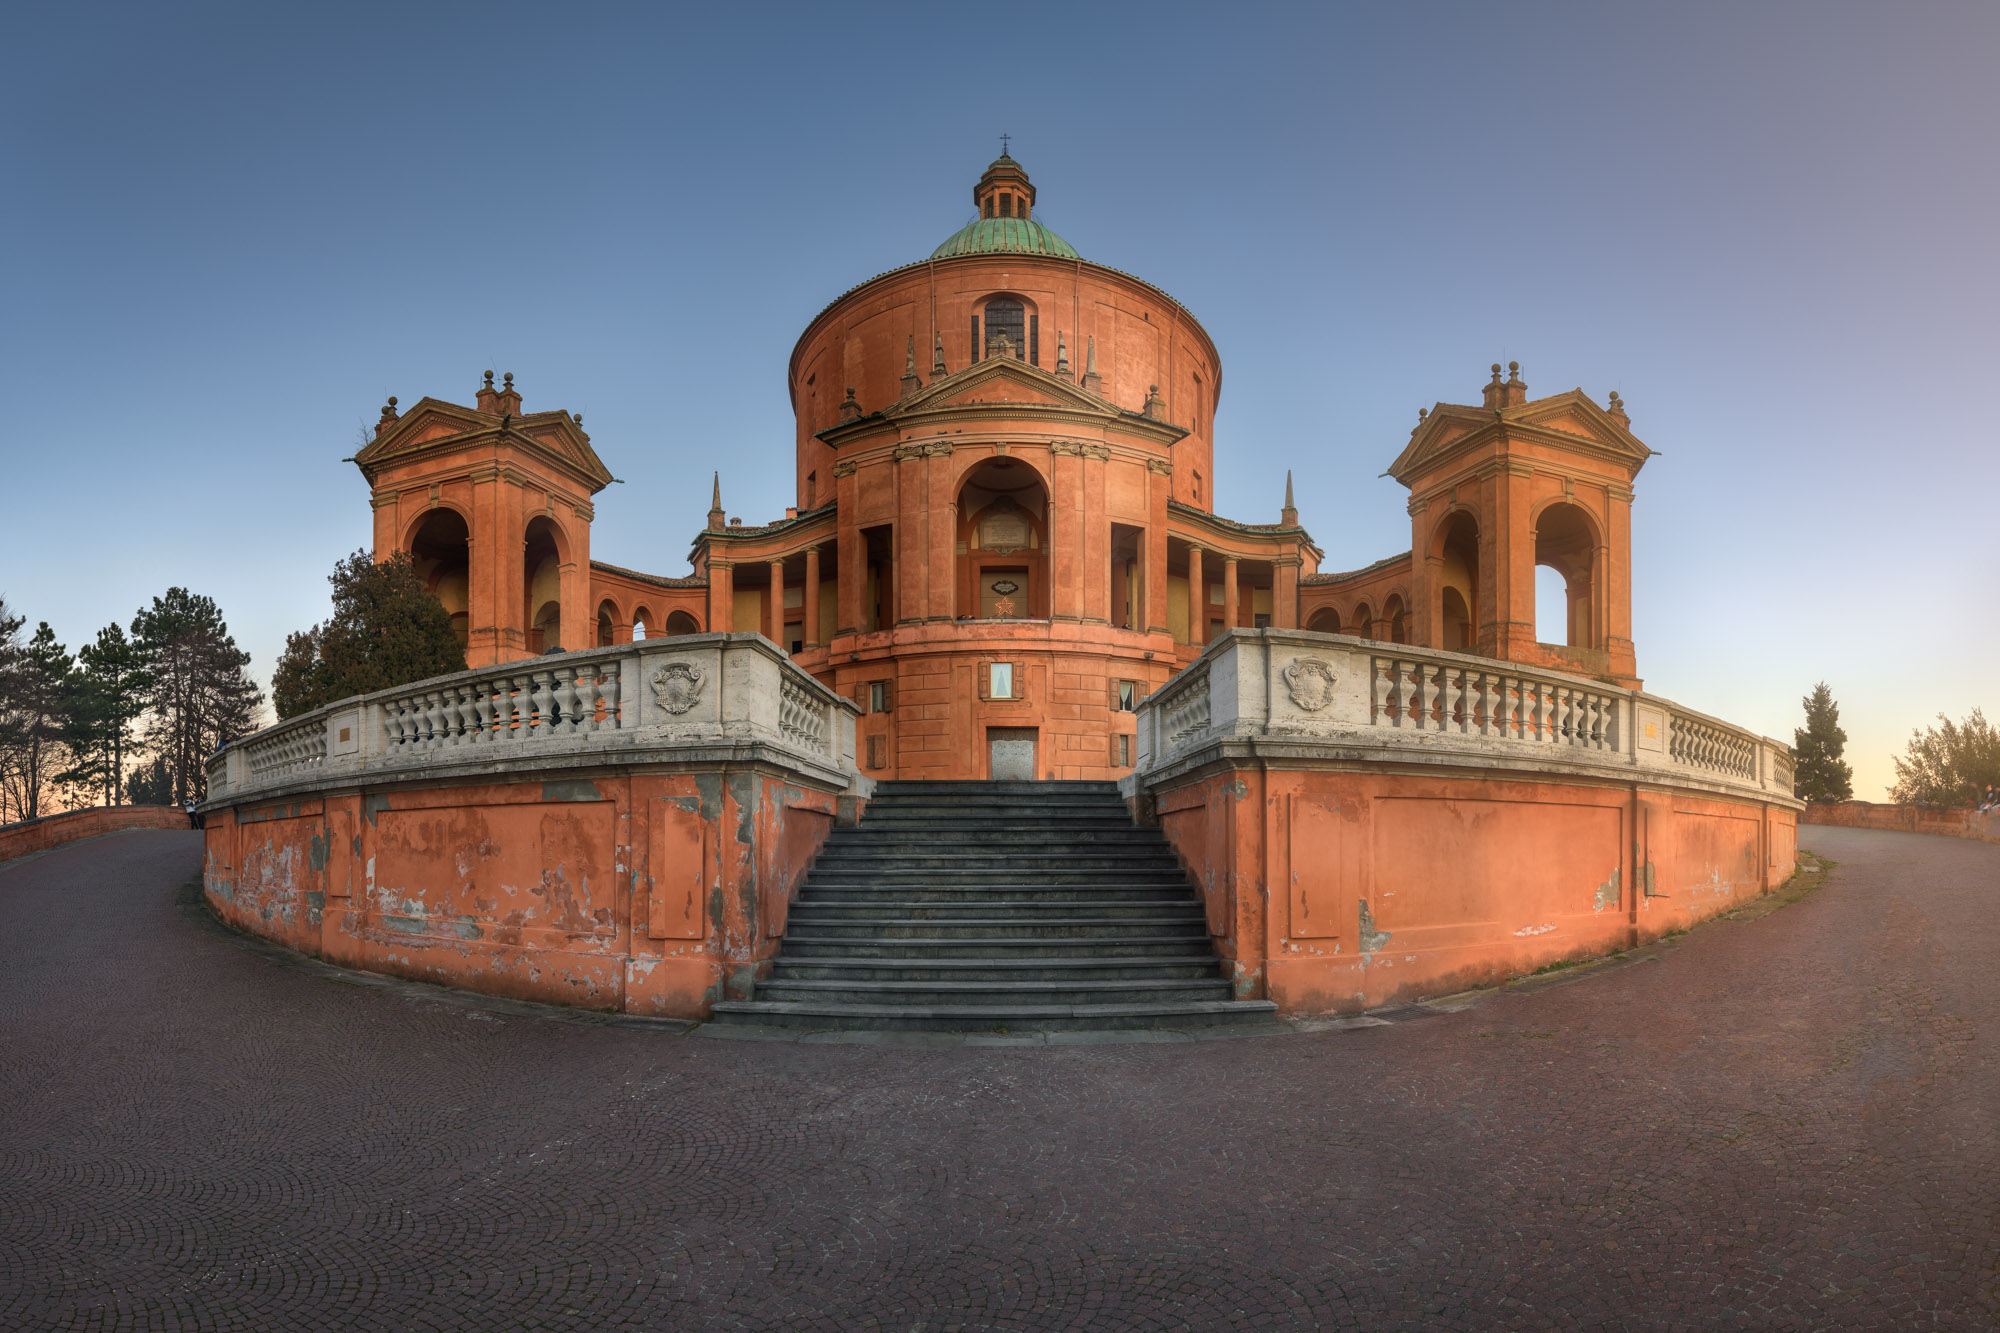 Panorama of Sanctuary of the Madonna di San Luca, Bologna, Italy